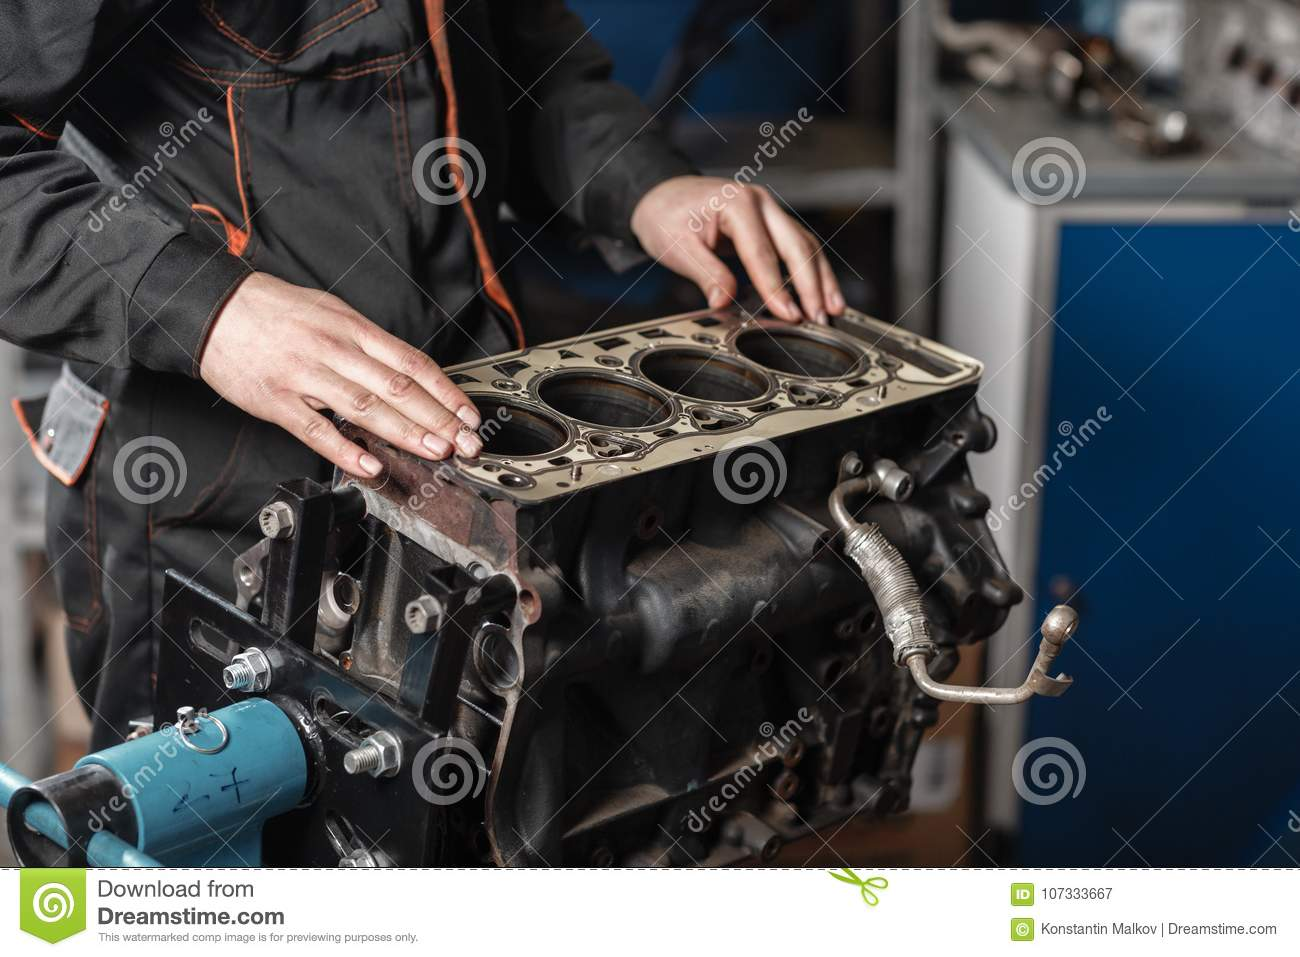 the mechanic disassemble block engine vehicle  engine on a repair stand  with piston and connecting